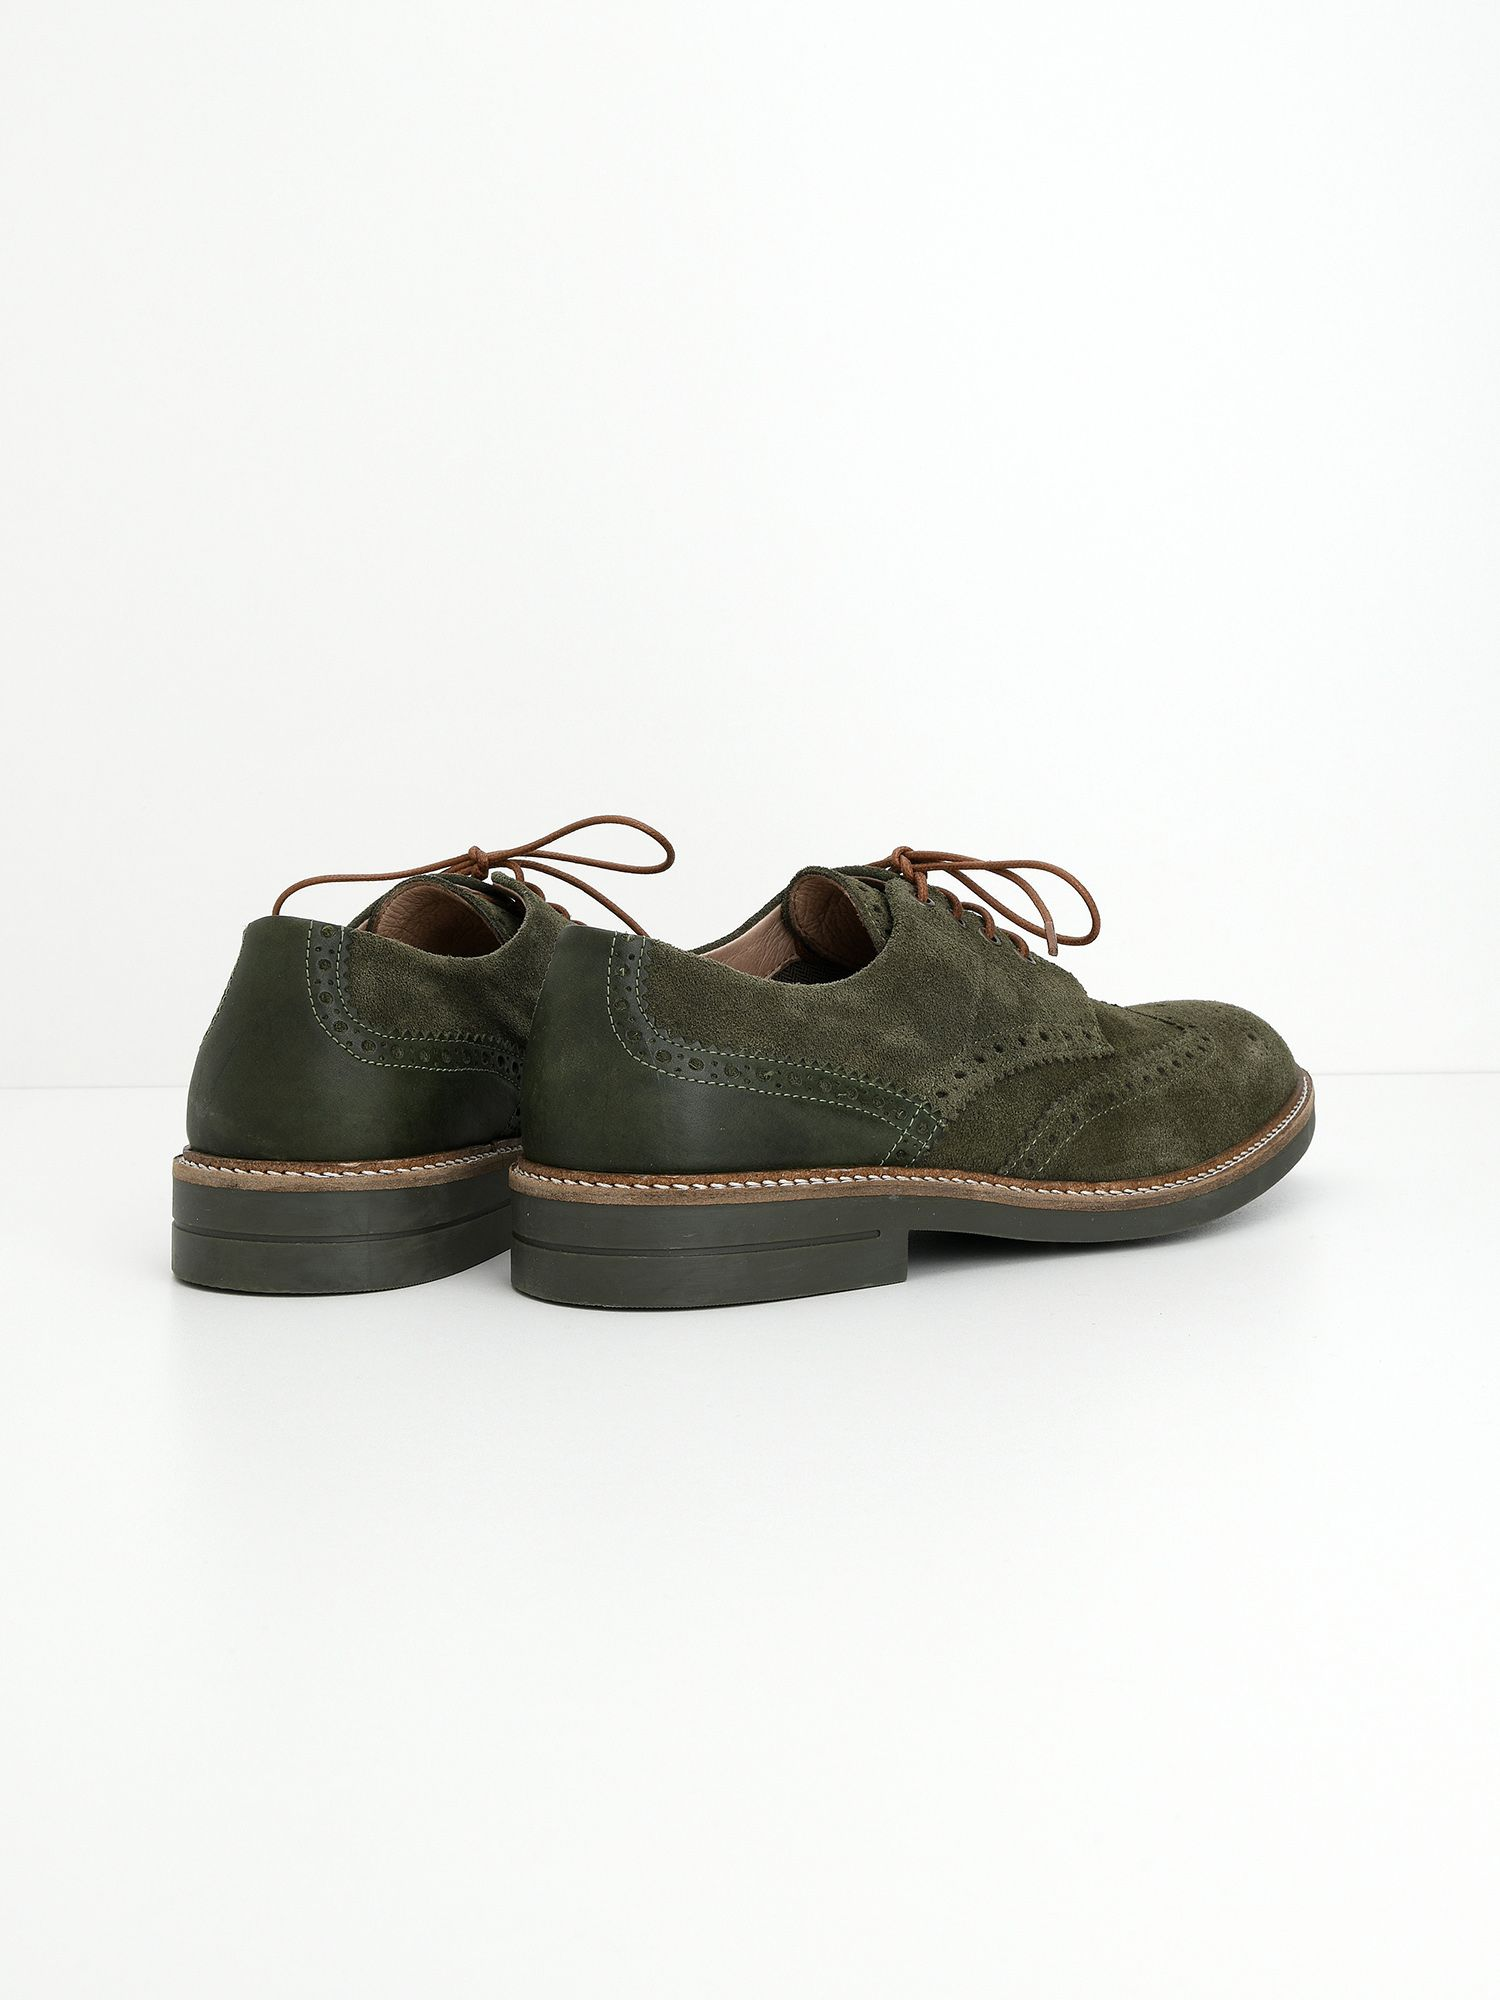 schmoove.fr Crew Perfo - Suede - Military